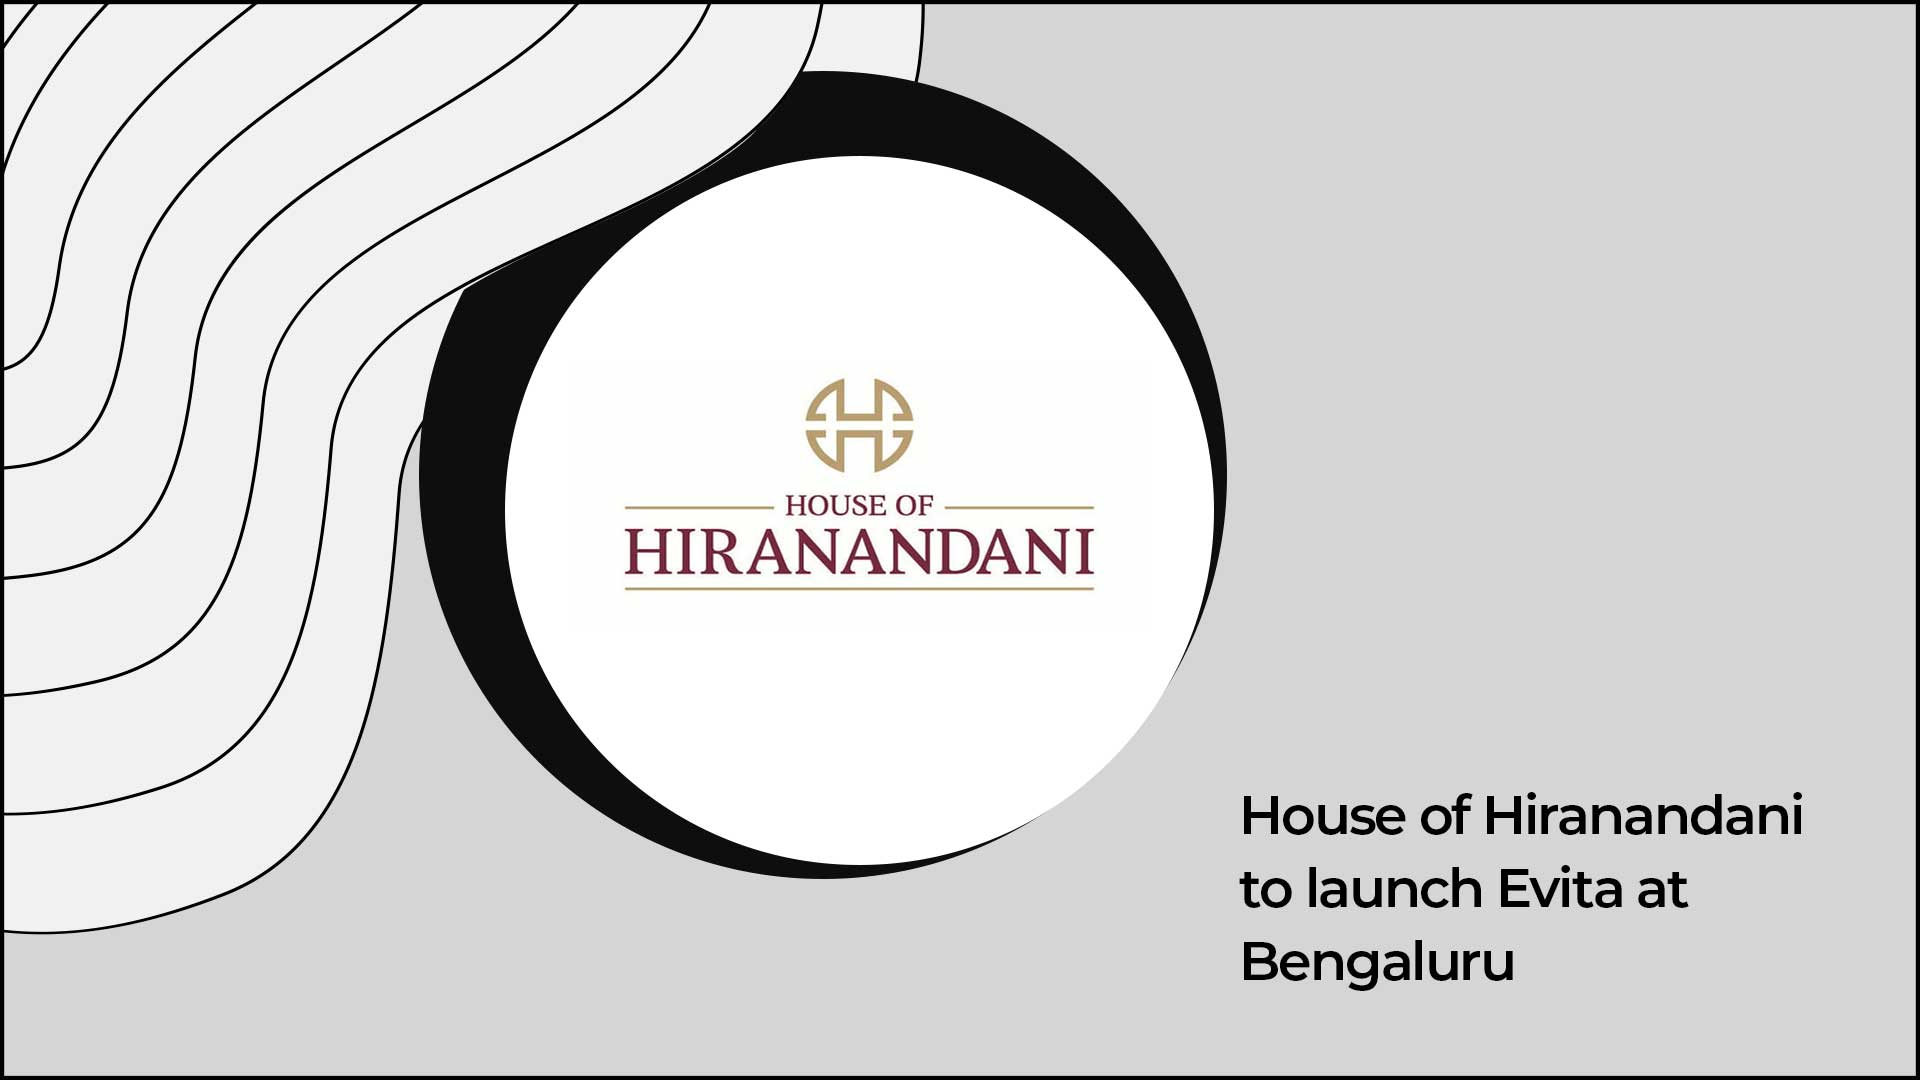 Bengaluru Gets A New Residential Landmark By House Of Hiranandani